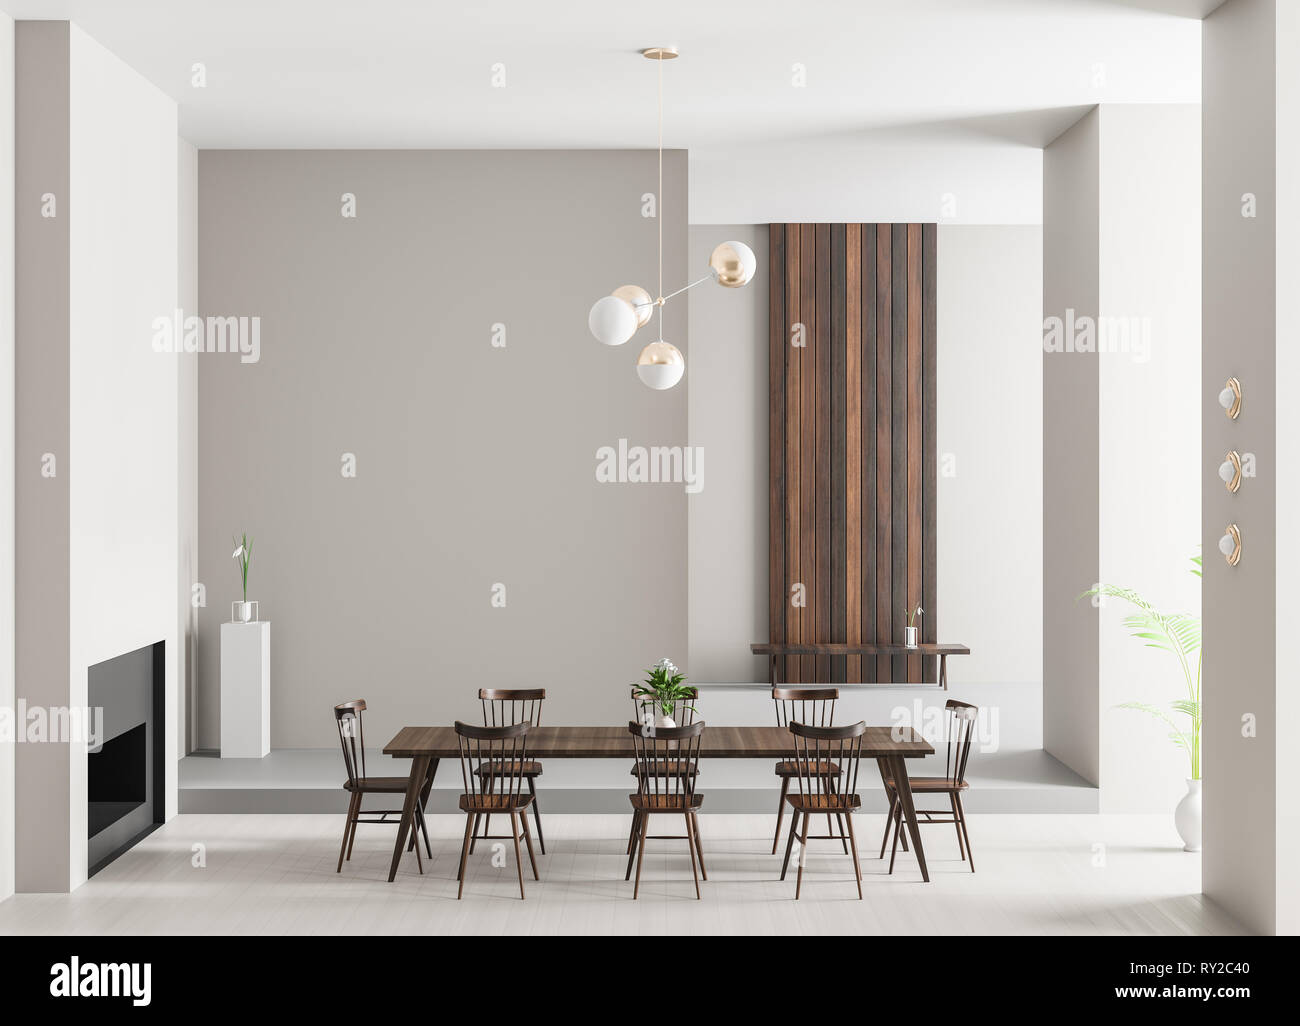 Spacious Luxury Dining Room With Fireplace Minimalist Modern Dining Room Design 3d Illustration Stock Photo Alamy